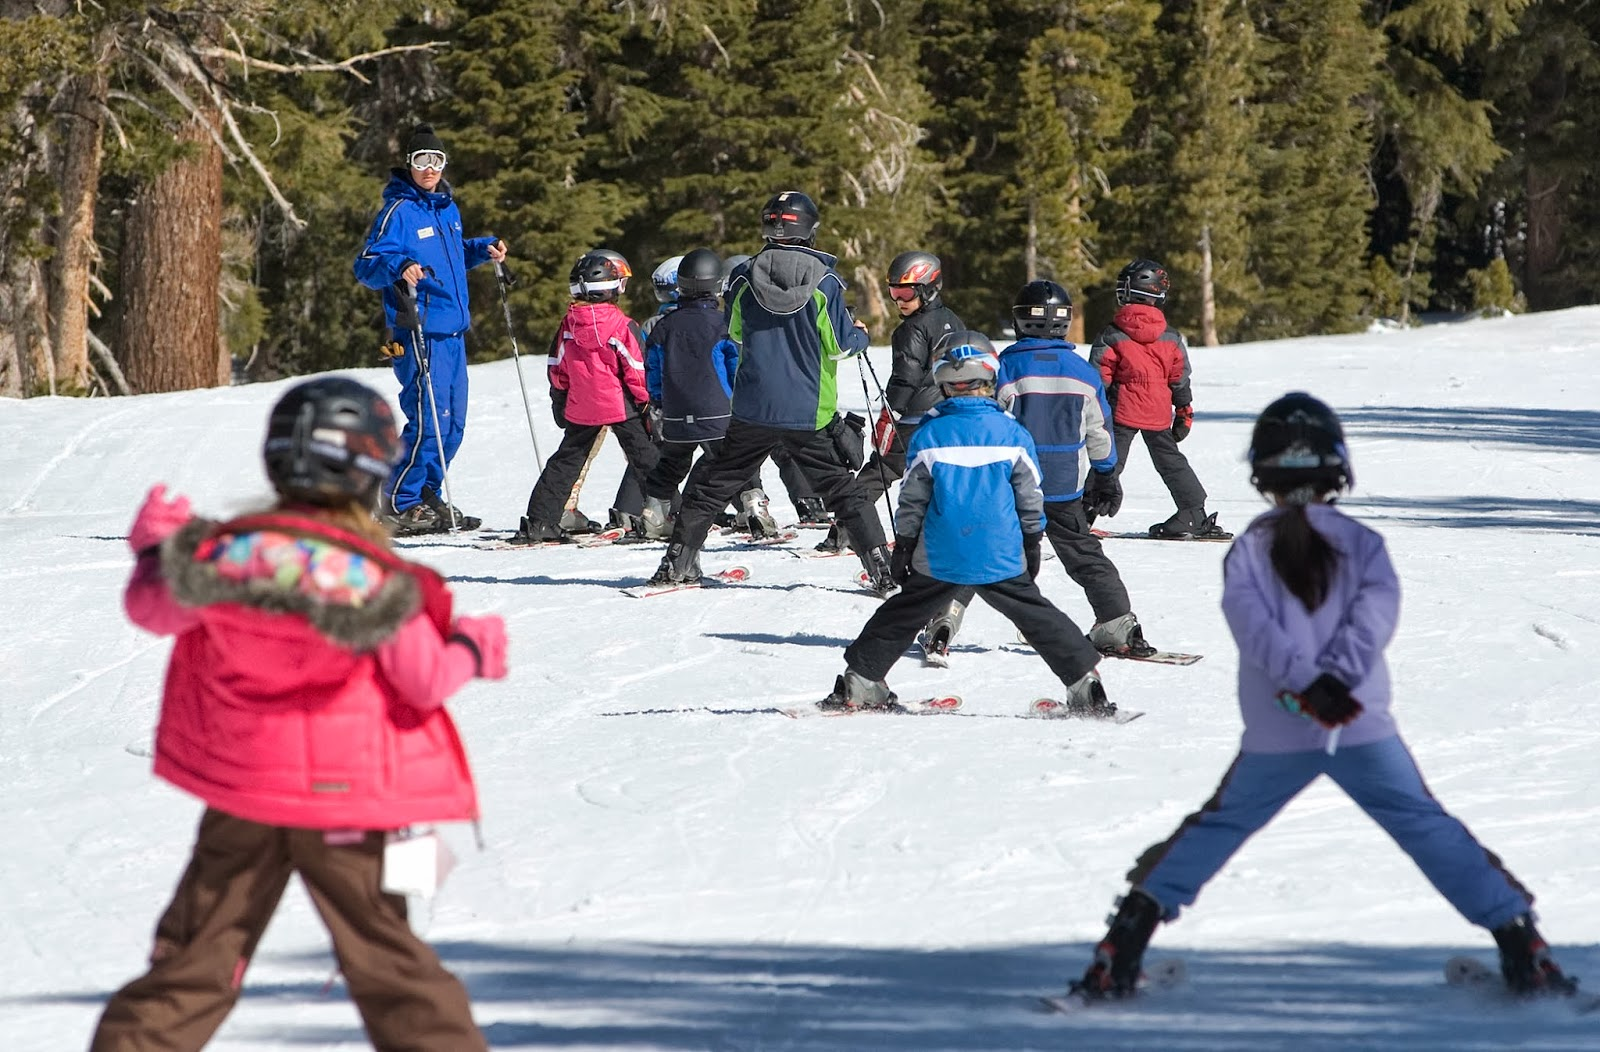 Mammoth, California - The Top Ski Resorts for Families In The World